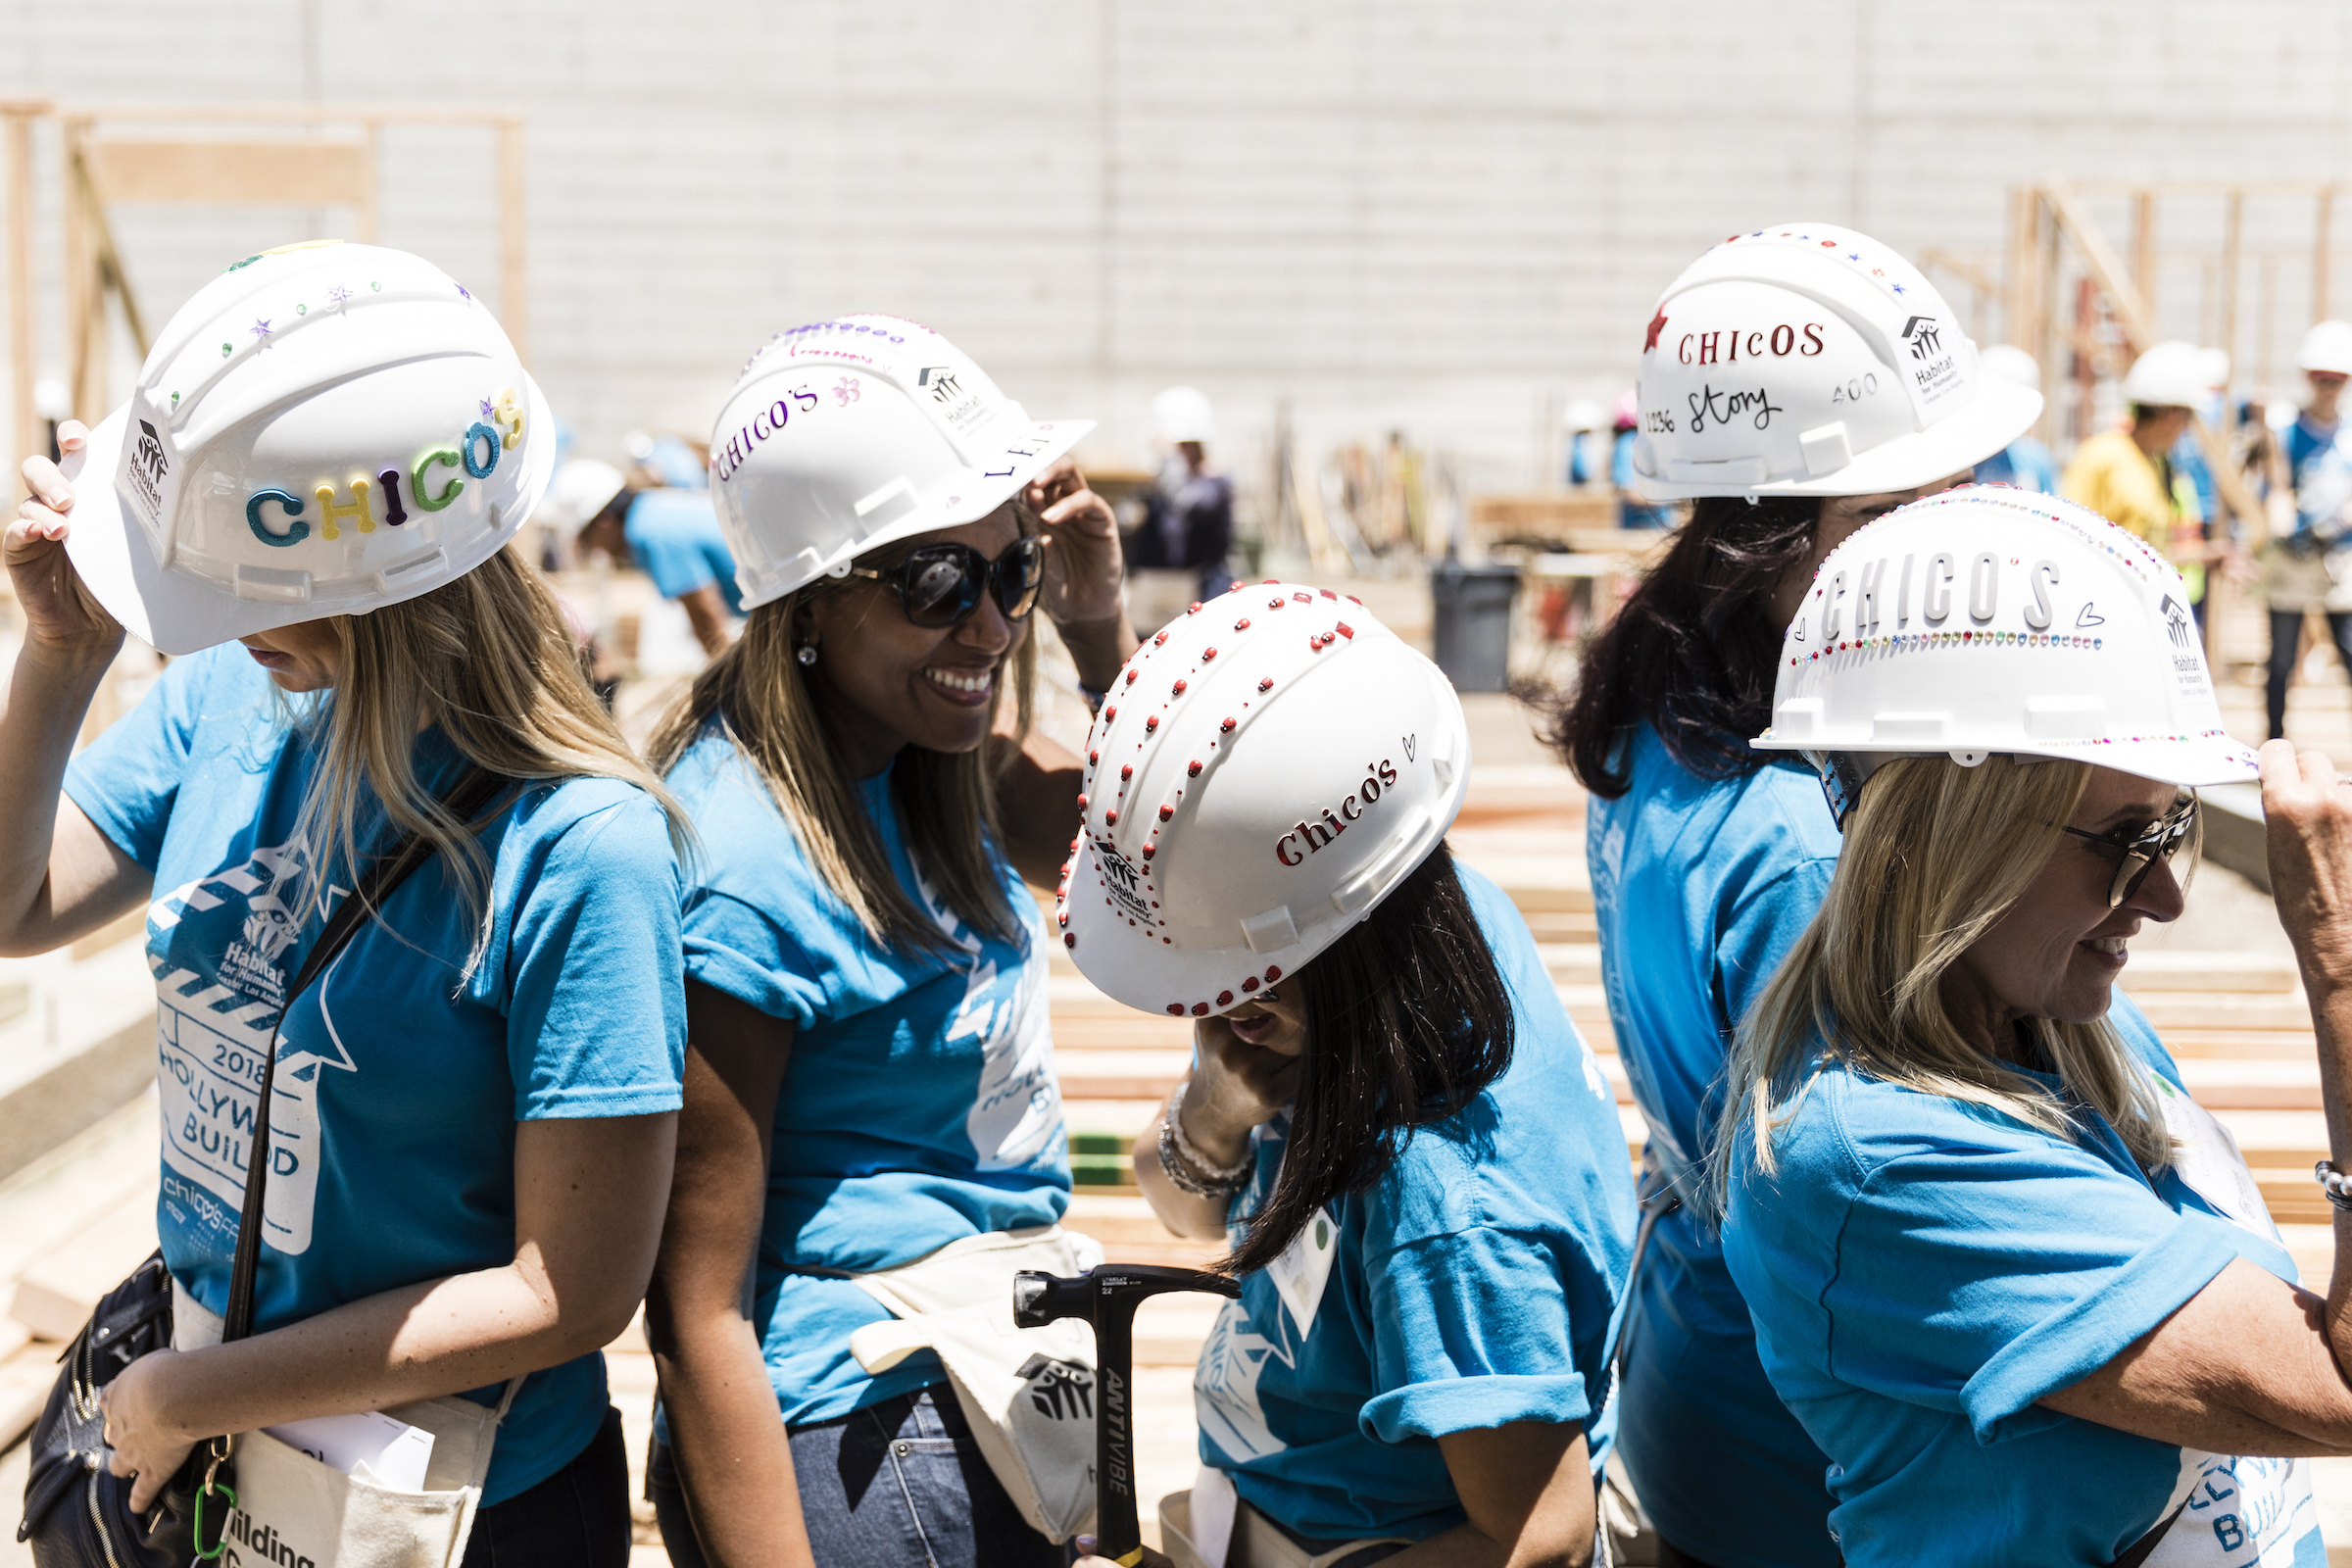 Volunteers at Power Women, Power Tools 2018 showing off their newly decorated hard hats on the construction site.